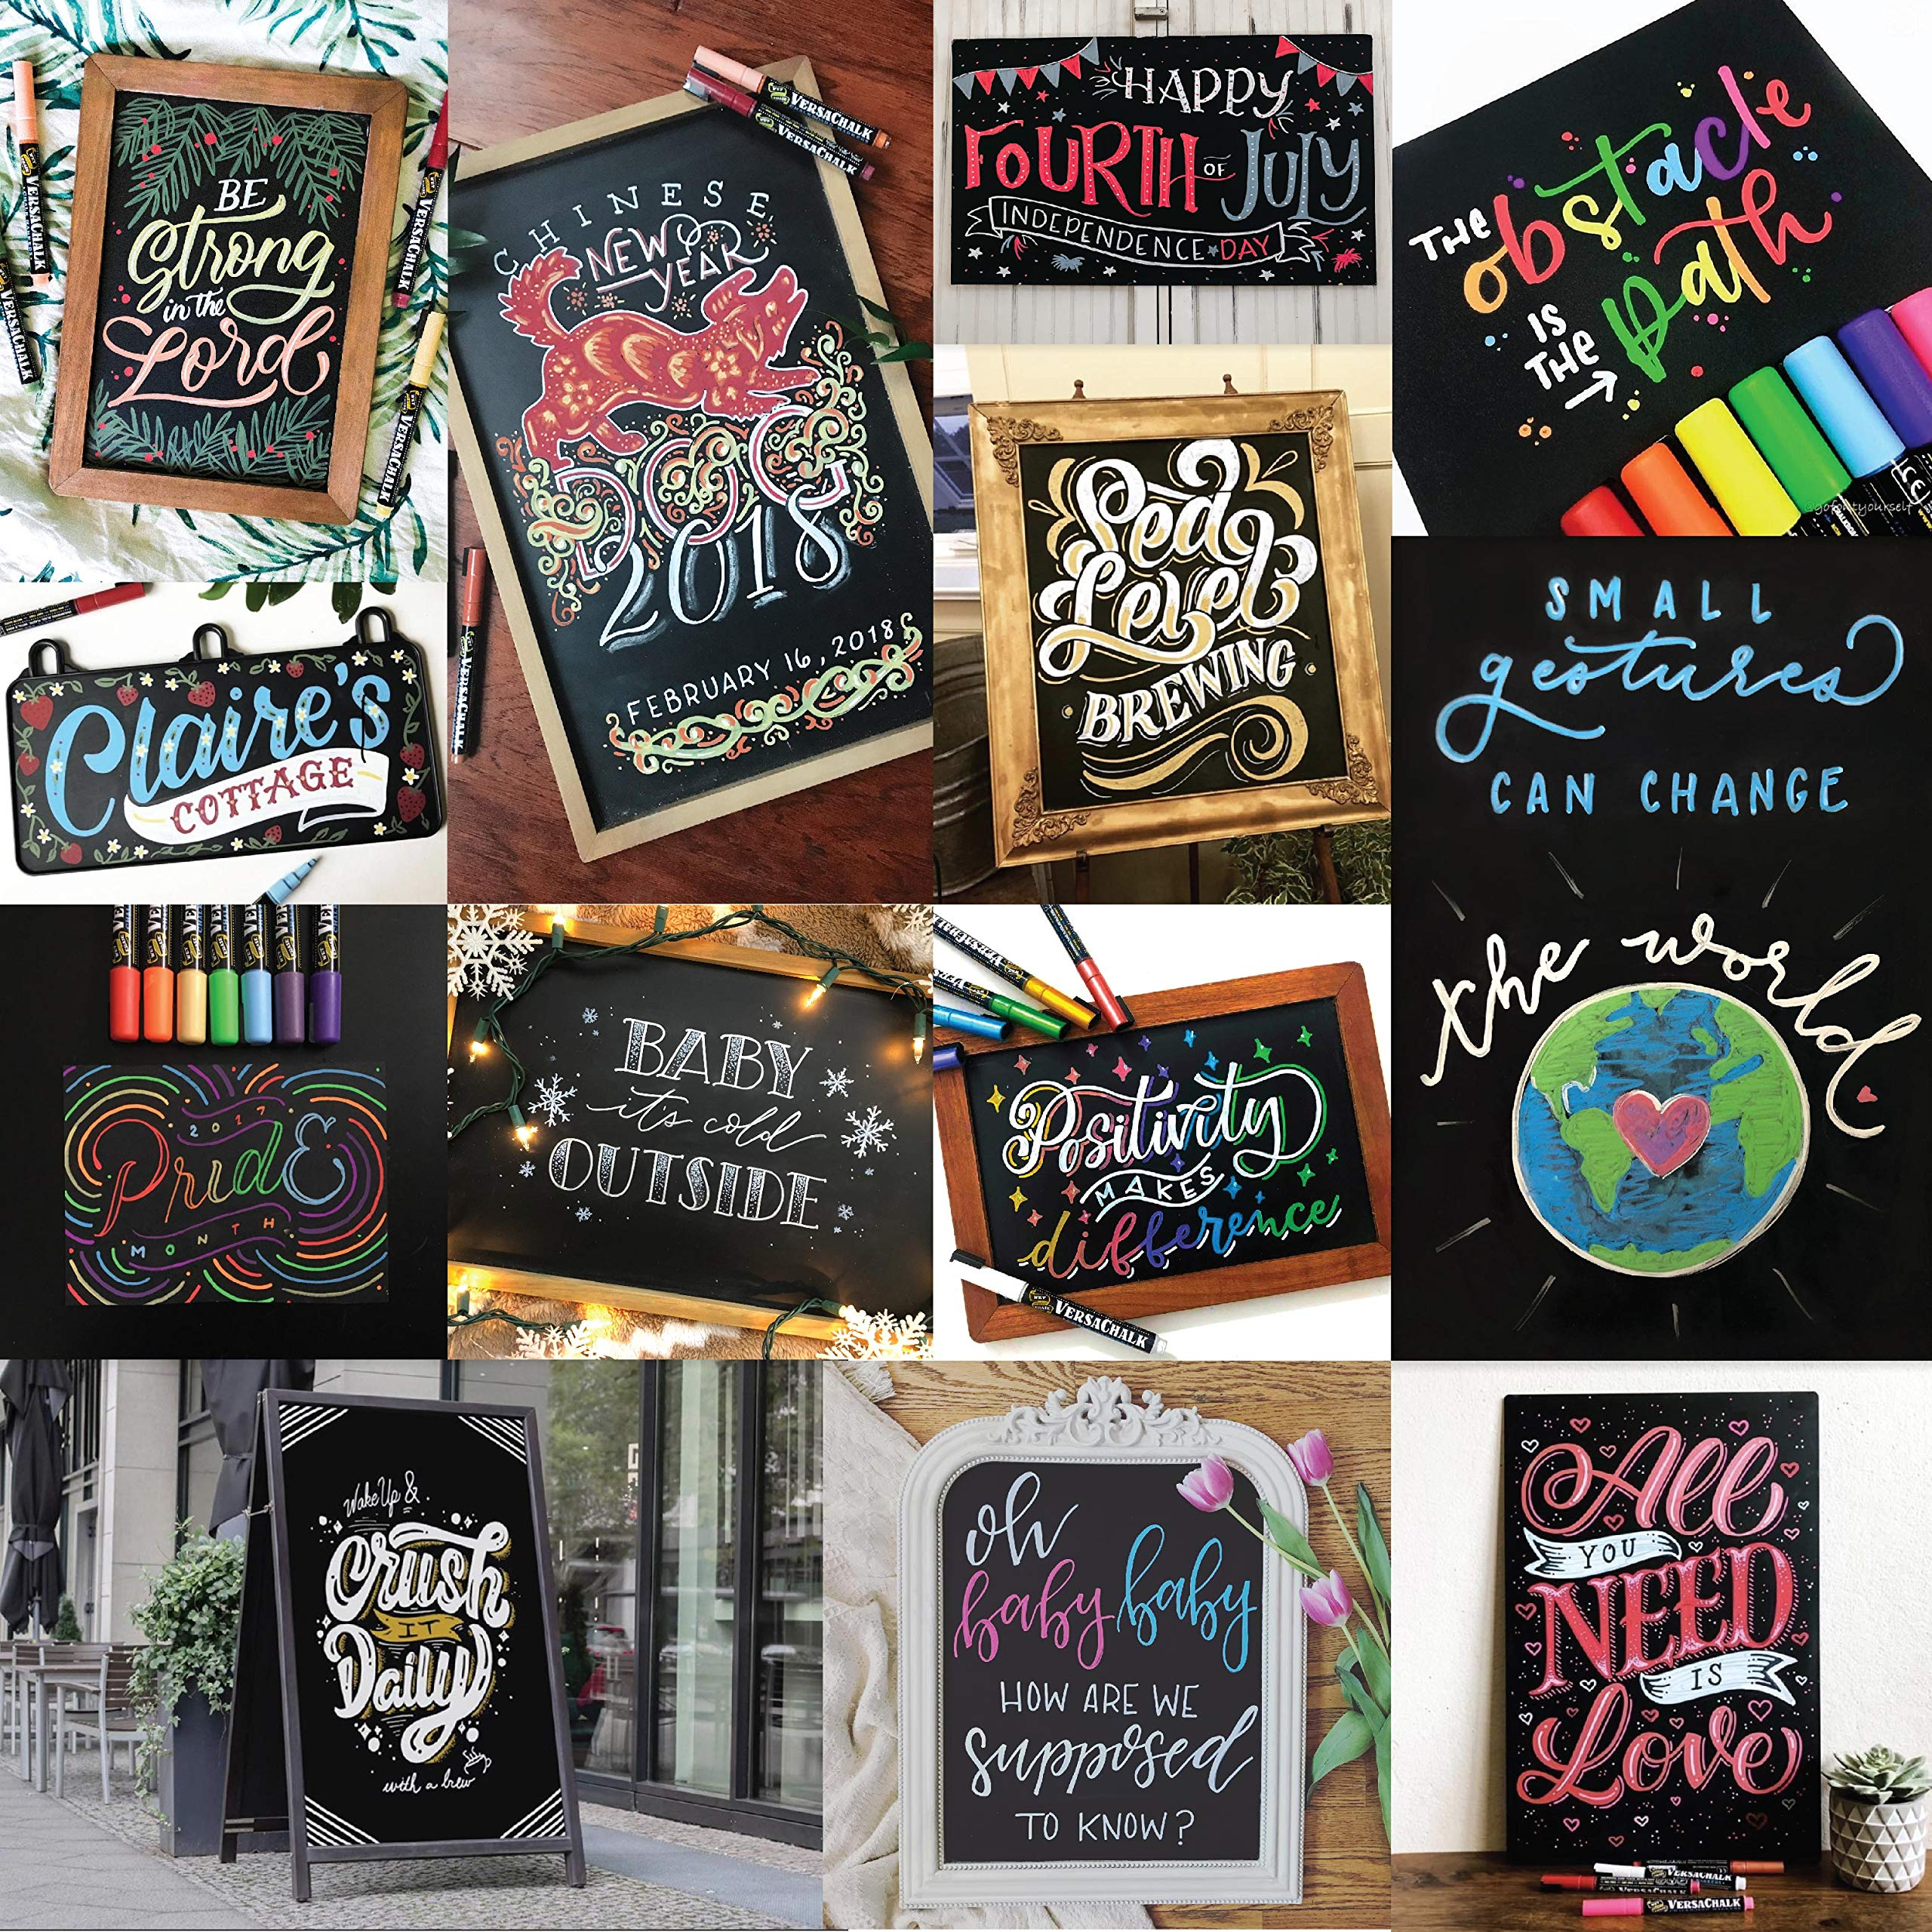 Classic Liquid Chalk Ink Chalkboard Markers by VersaChalk - Wet Erase Chalk Pens for Chalkboard Sign, Blackboard, Dry Erase Board (5mm Bold Reversible Tip) by VersaChalk (Image #9)